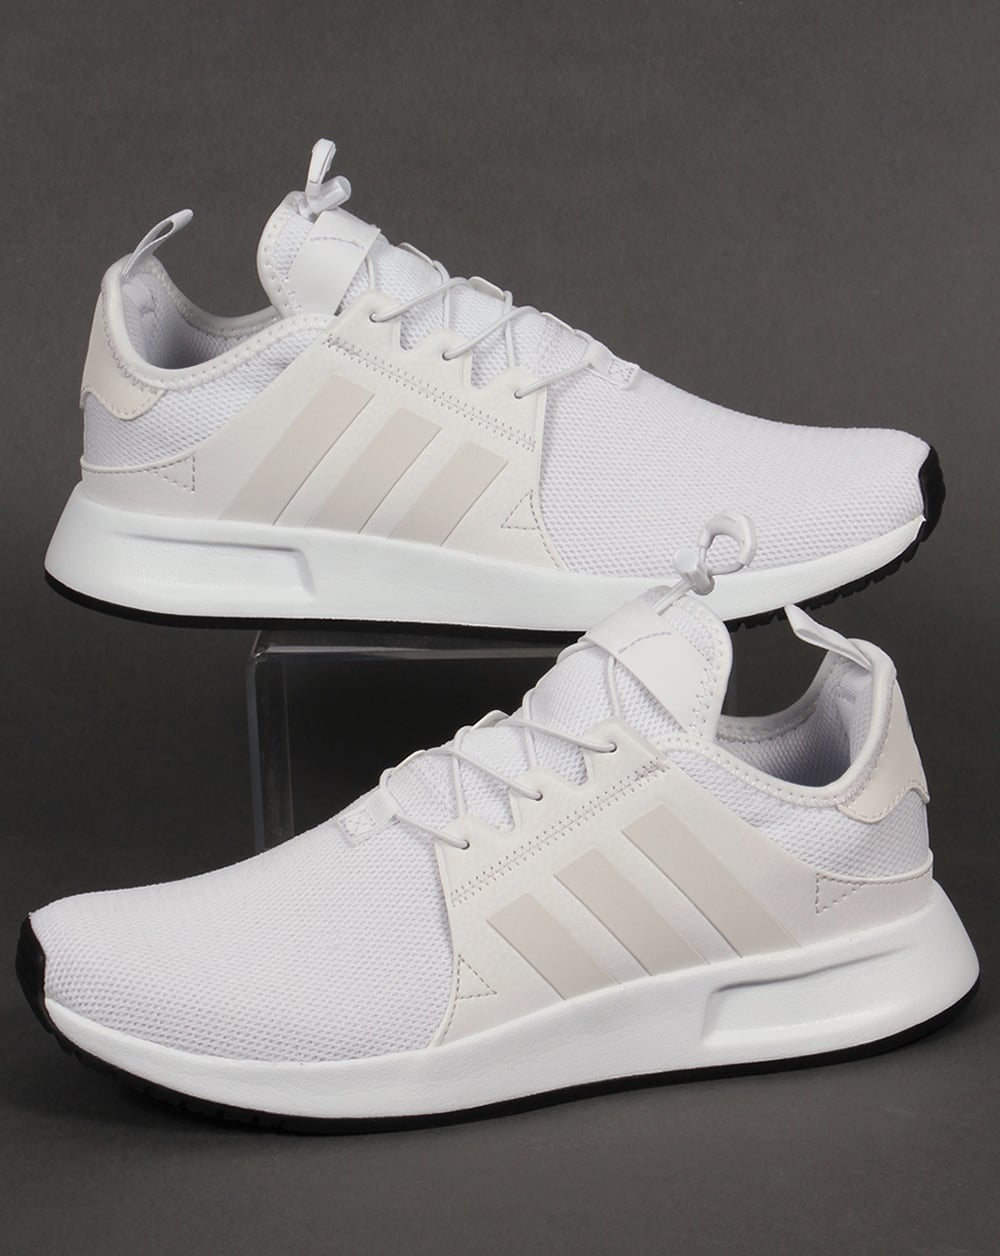 adidas xplr trainers triple white originals shoes running. Black Bedroom Furniture Sets. Home Design Ideas